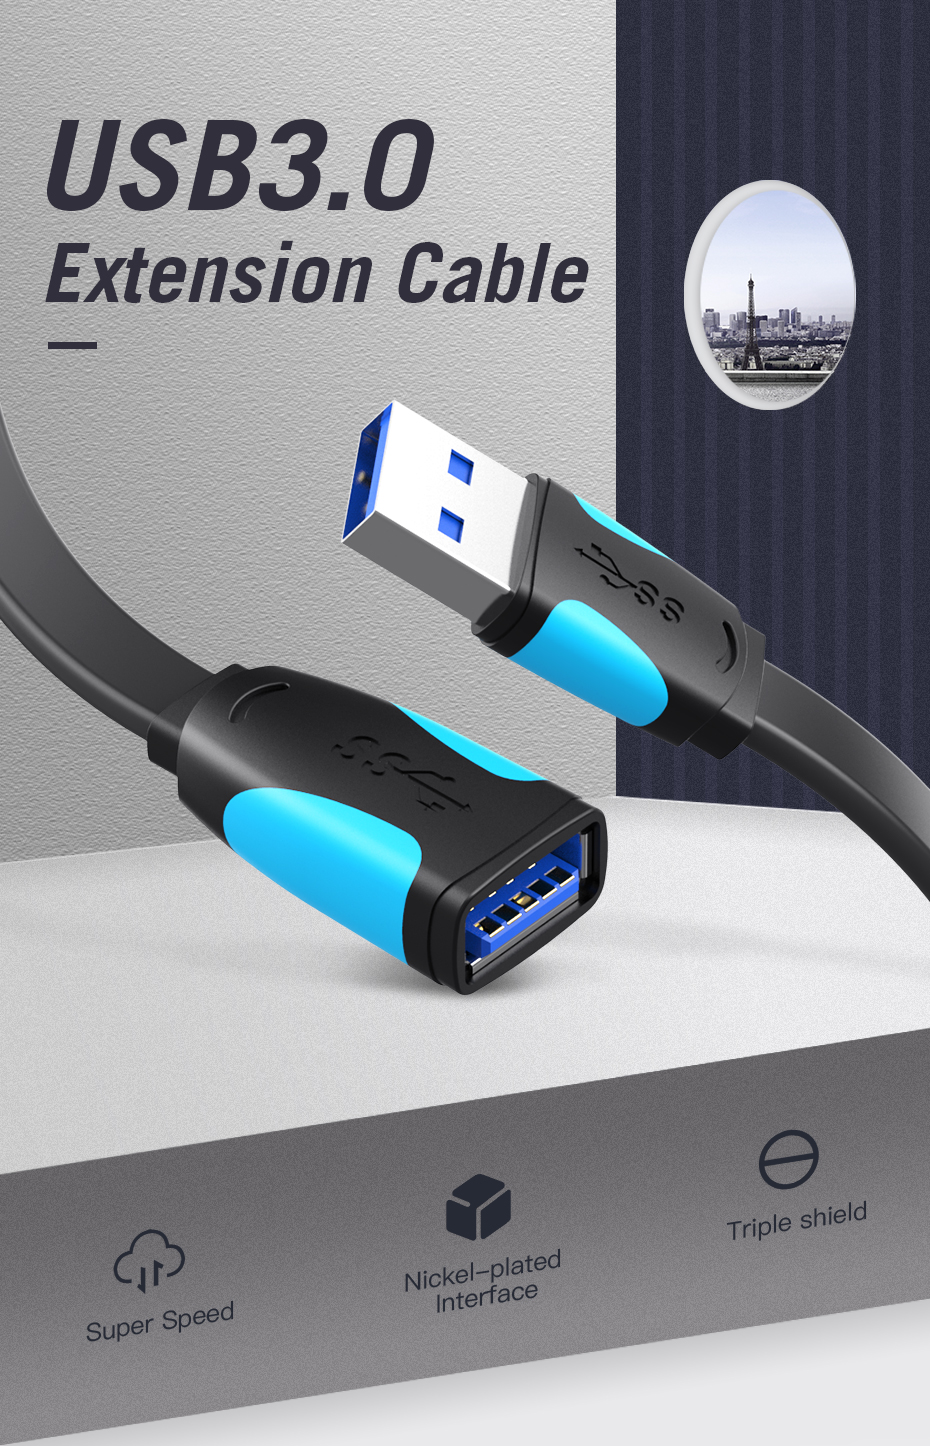 HTB1F8HIaOHrK1Rjy0Flq6AsaFXal Vention USB2.0 3.0 Extension Cable Male to Female Extender Cable USB3.0 Cable Extended for laptop PC USB Extension Cable